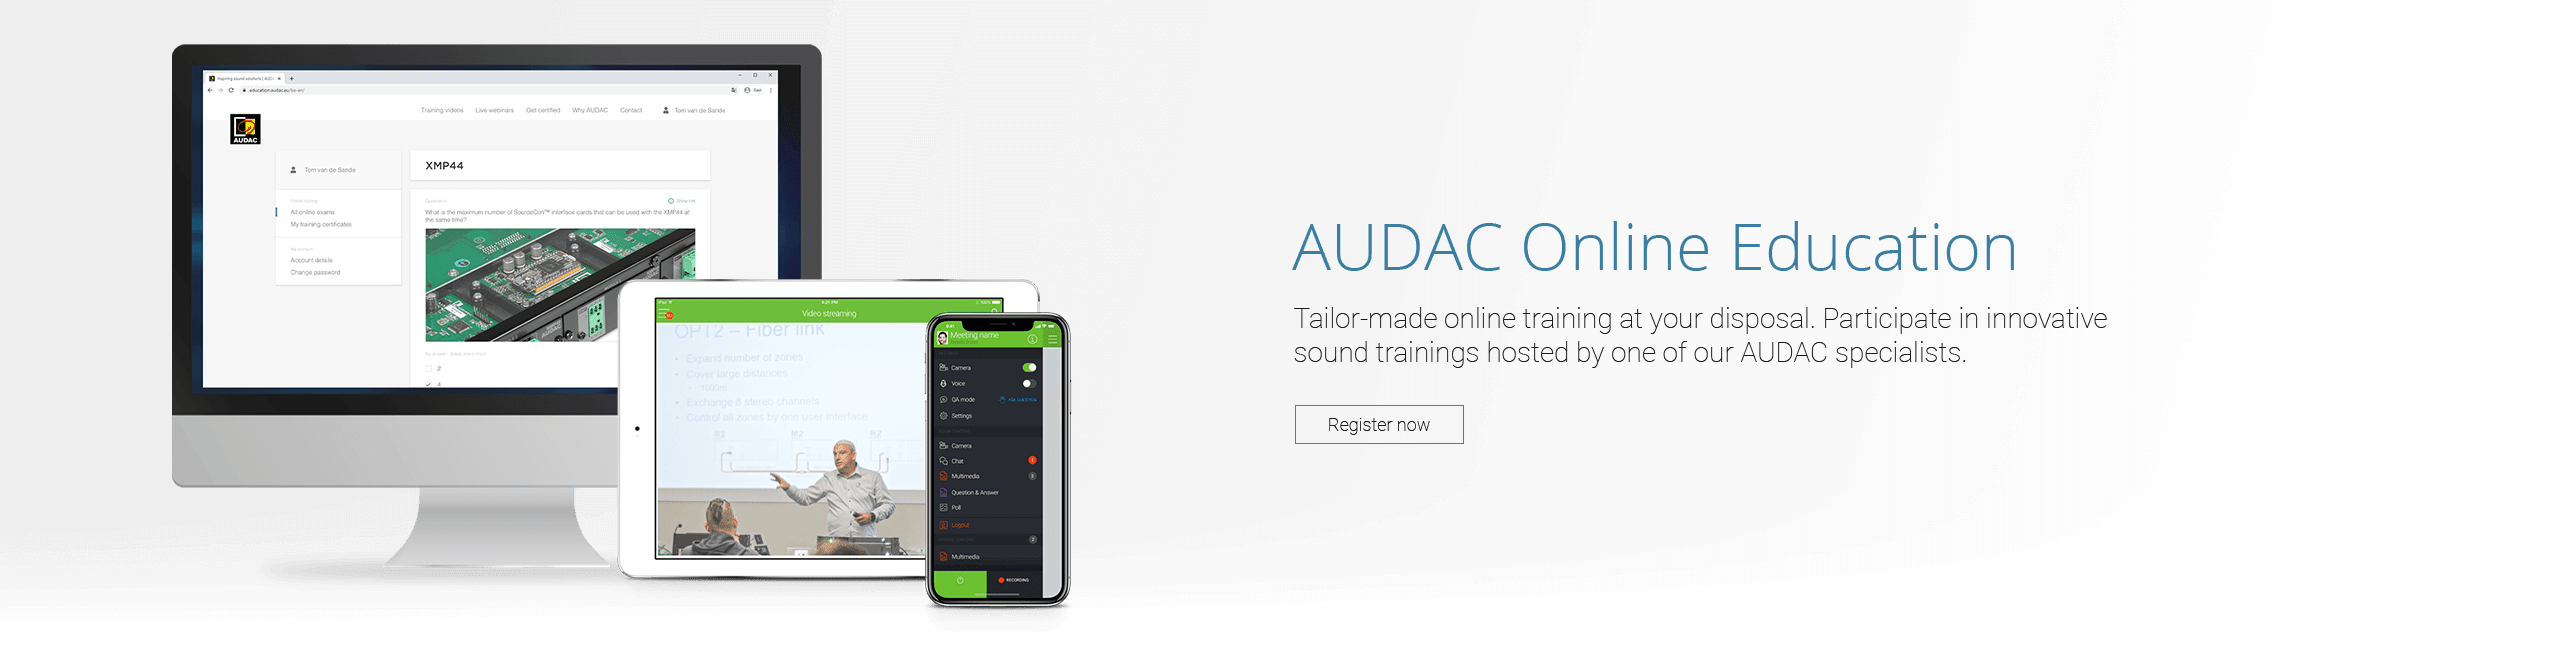 AUDAC - Educational platform - Register now